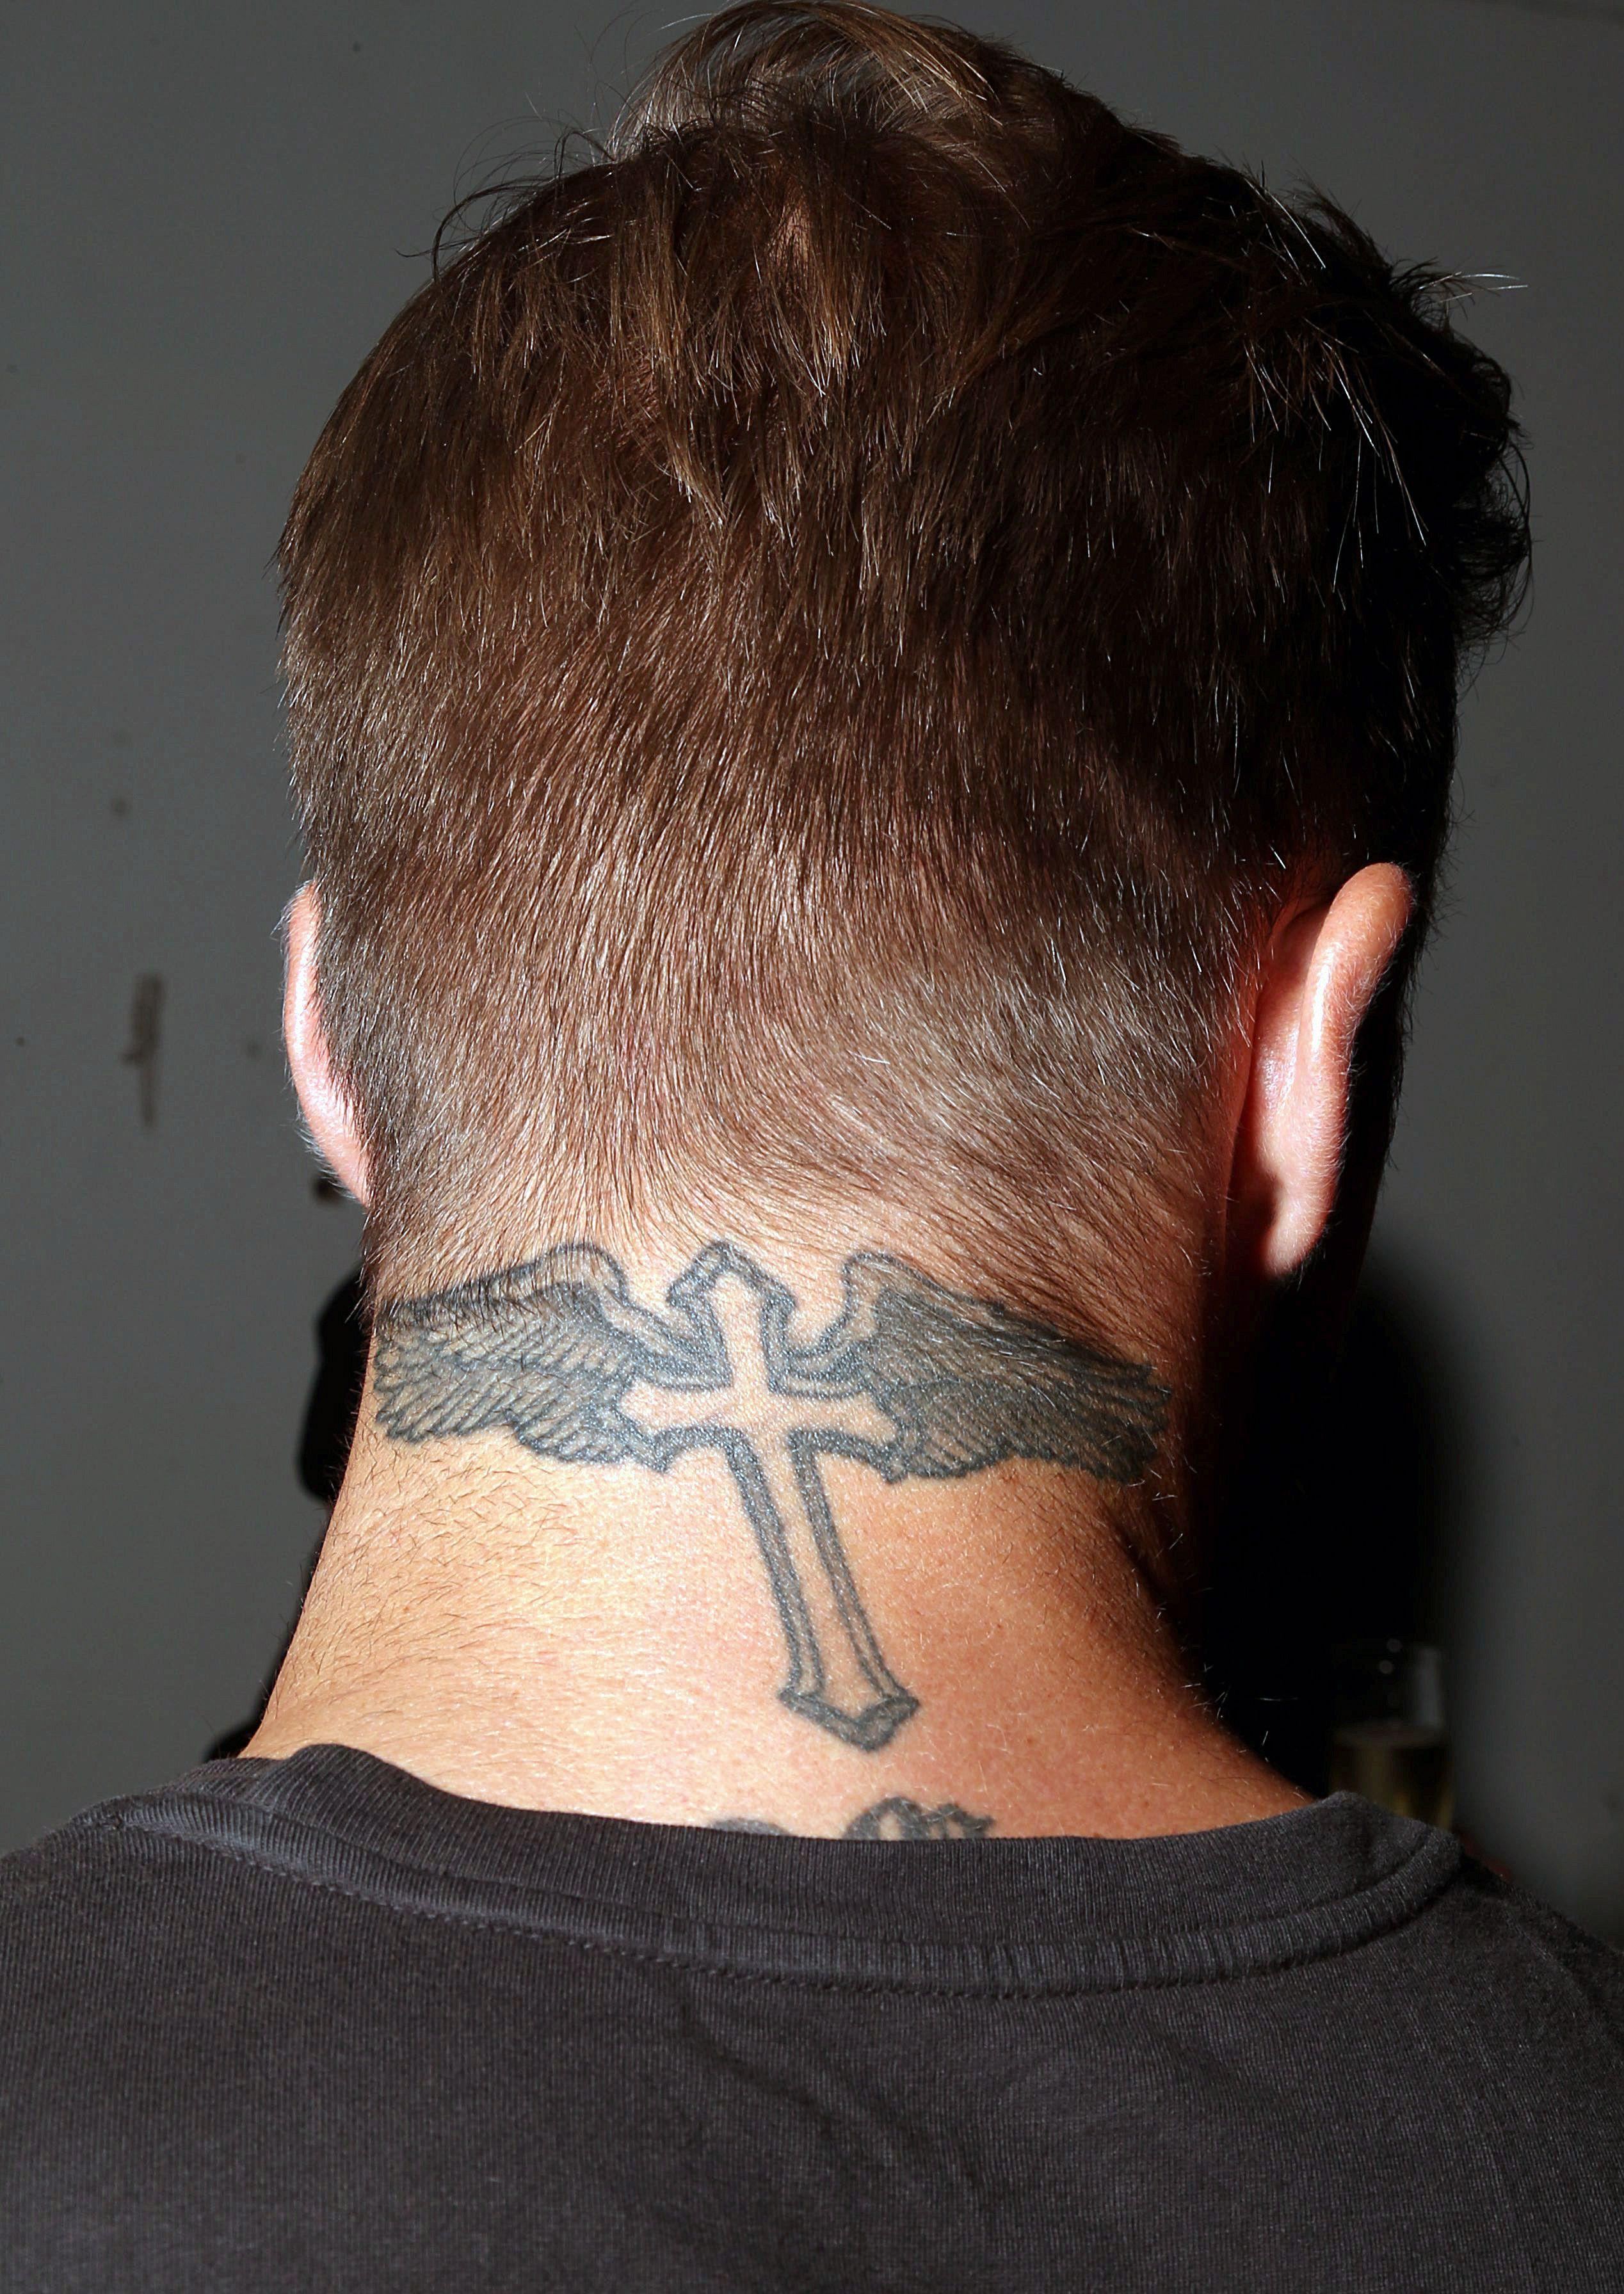 f612b50a1f5b0 <p>A tattoo on the back of David's neck features a gothic-style